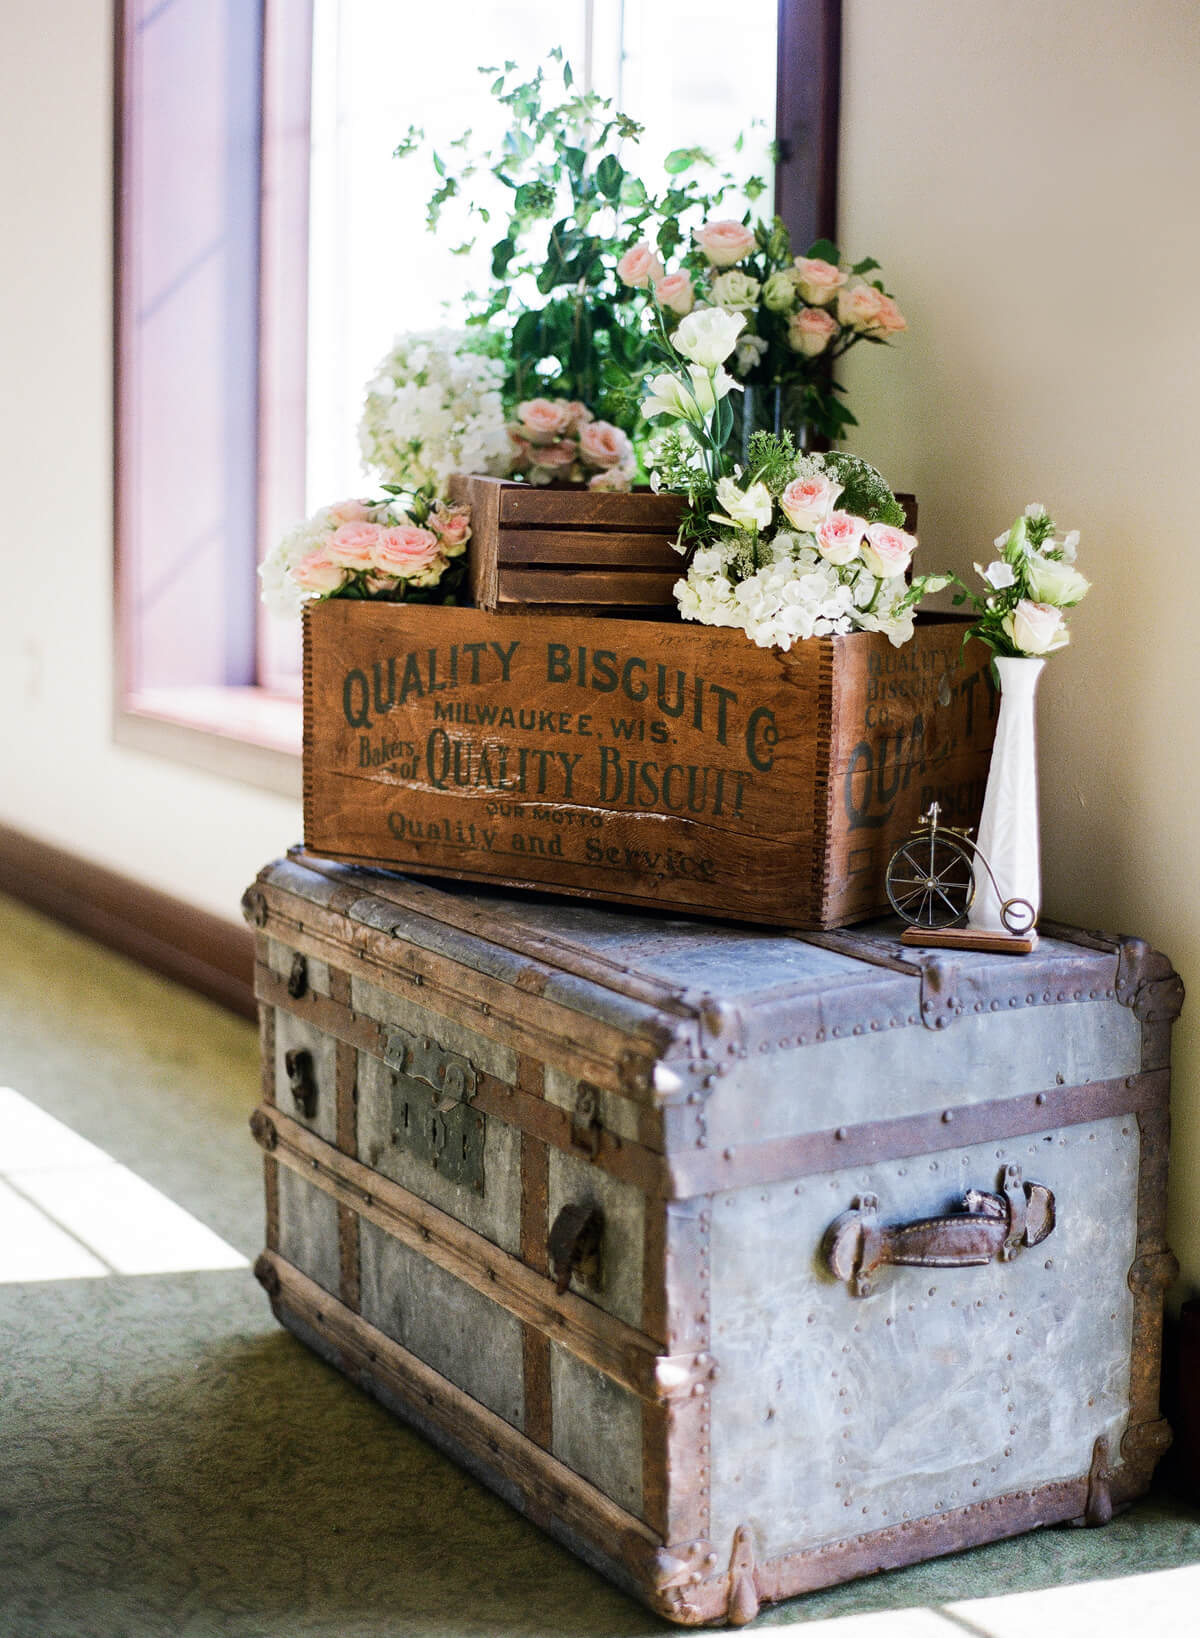 Arrange Feminine Florals on Antique Trunks